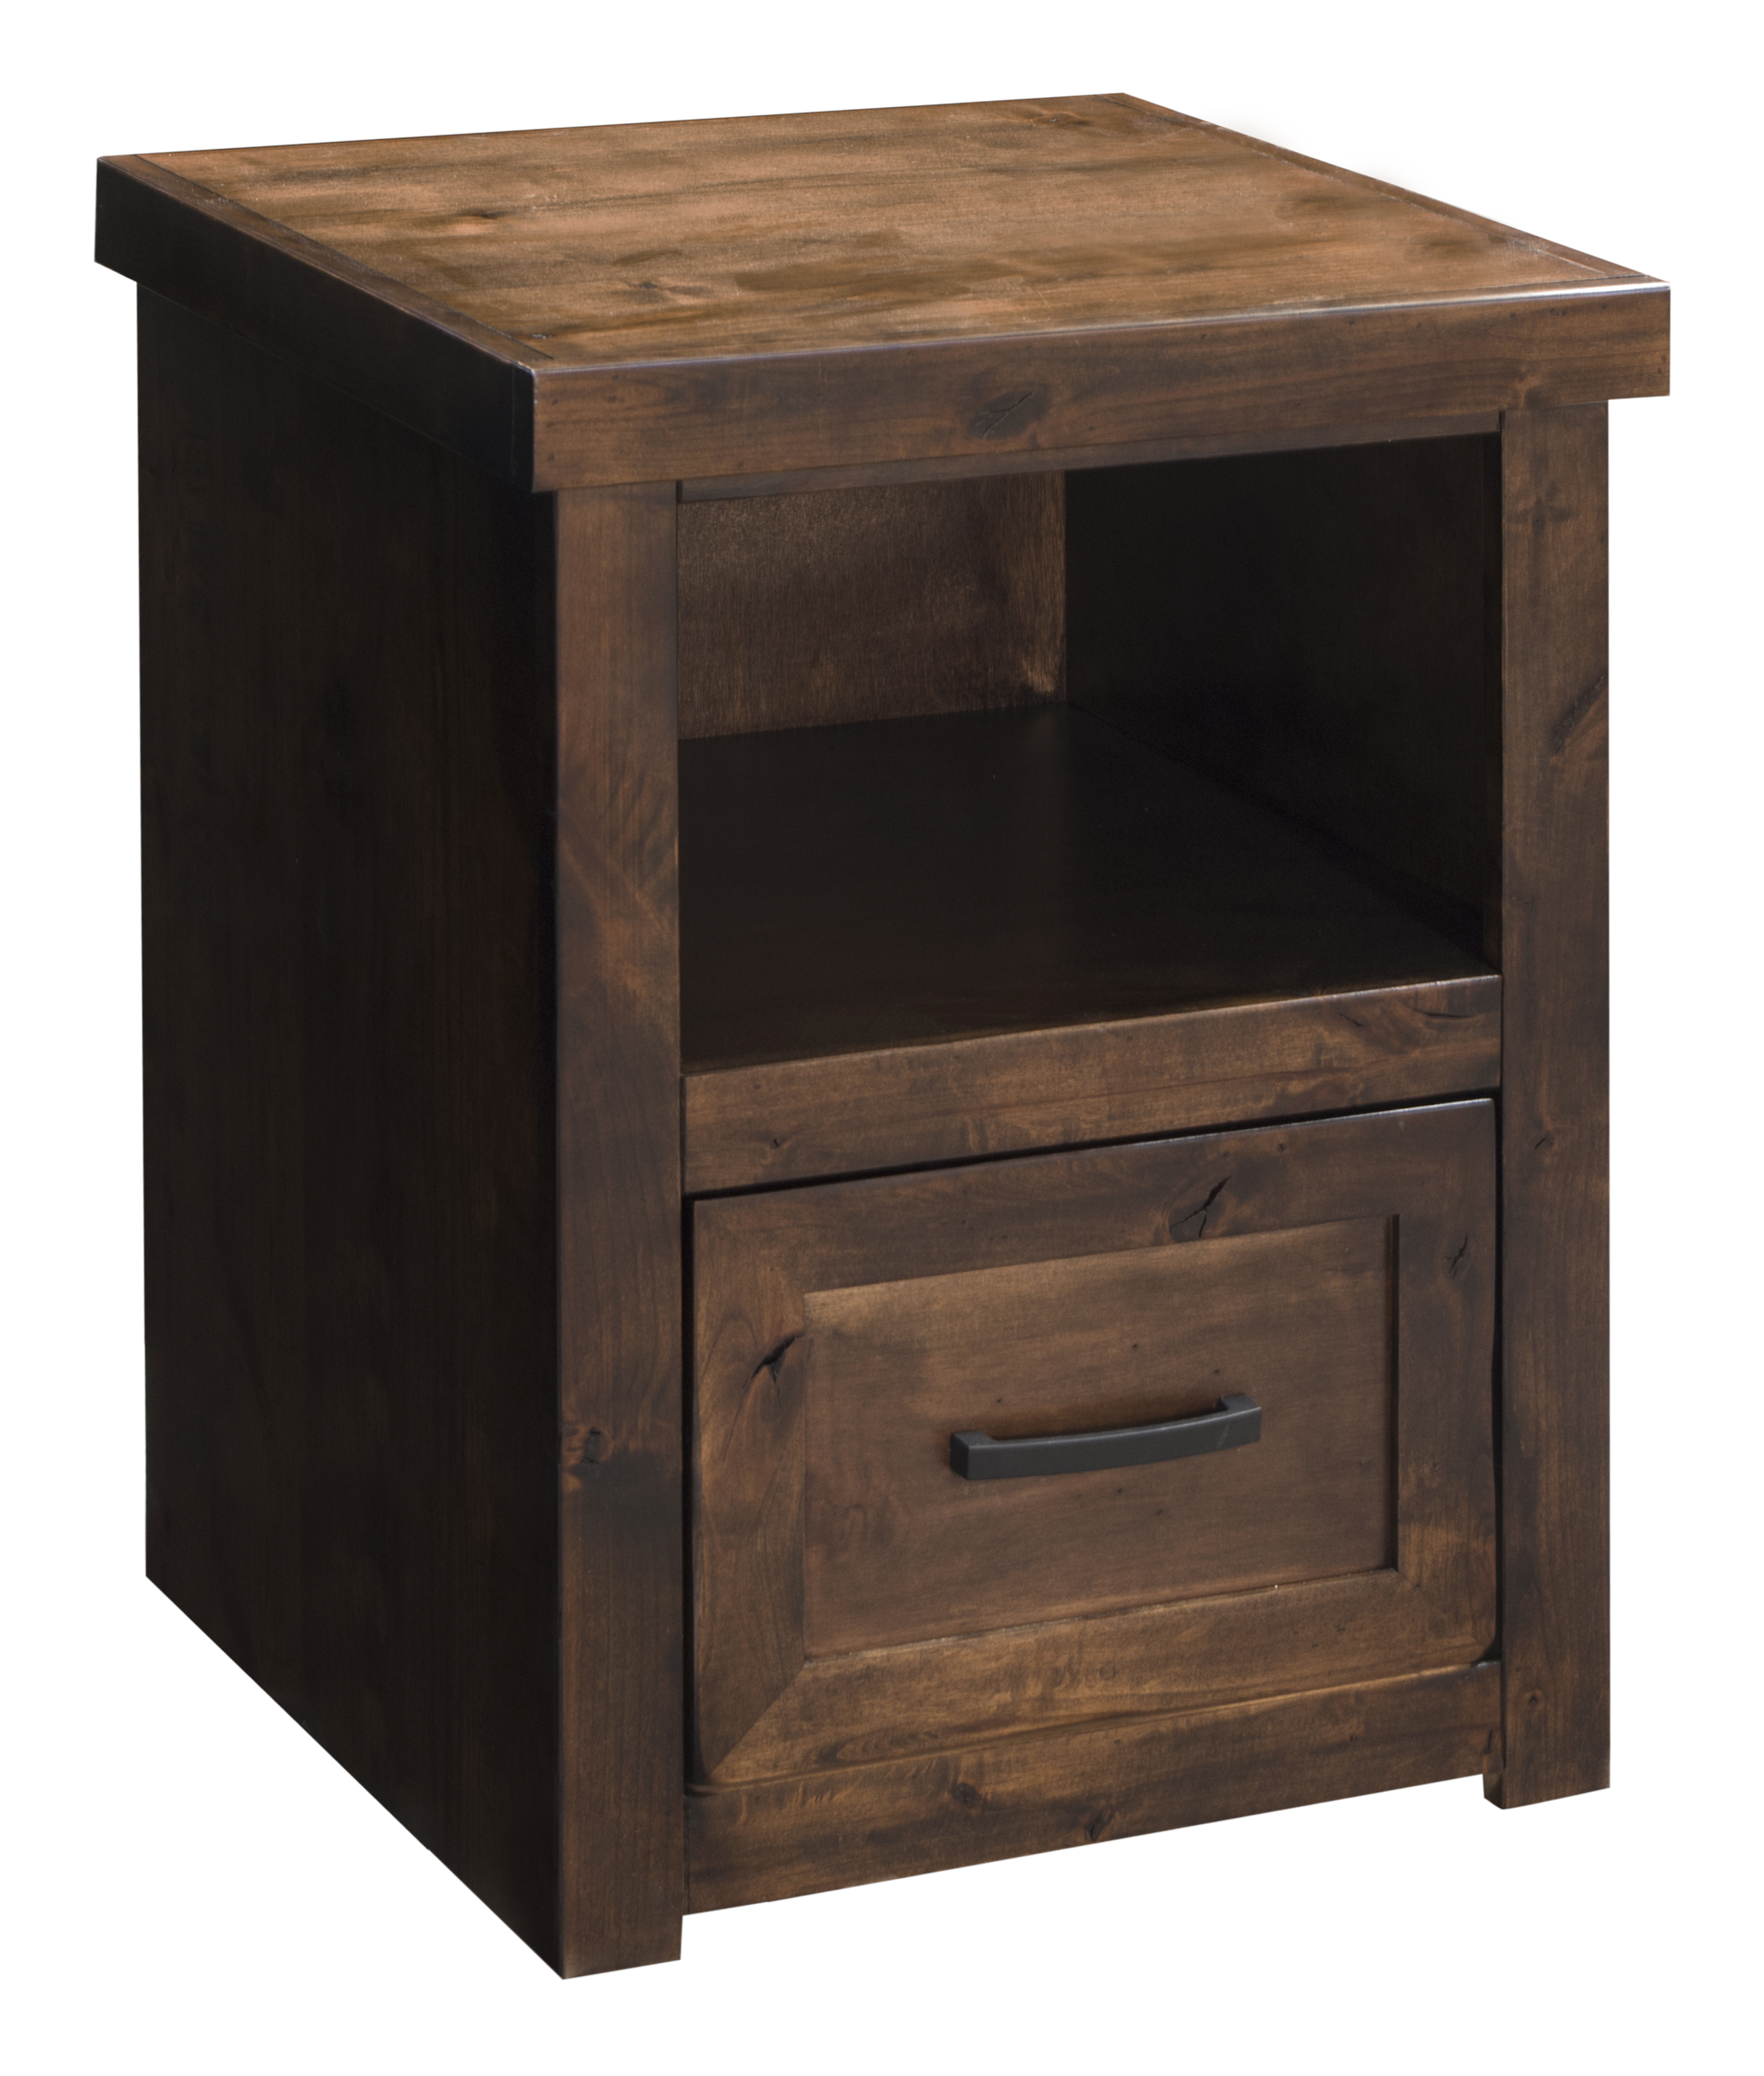 Vendor 1356 Sausalito Collection One Drawer File Cabinet - Item Number: SL6805-WKY